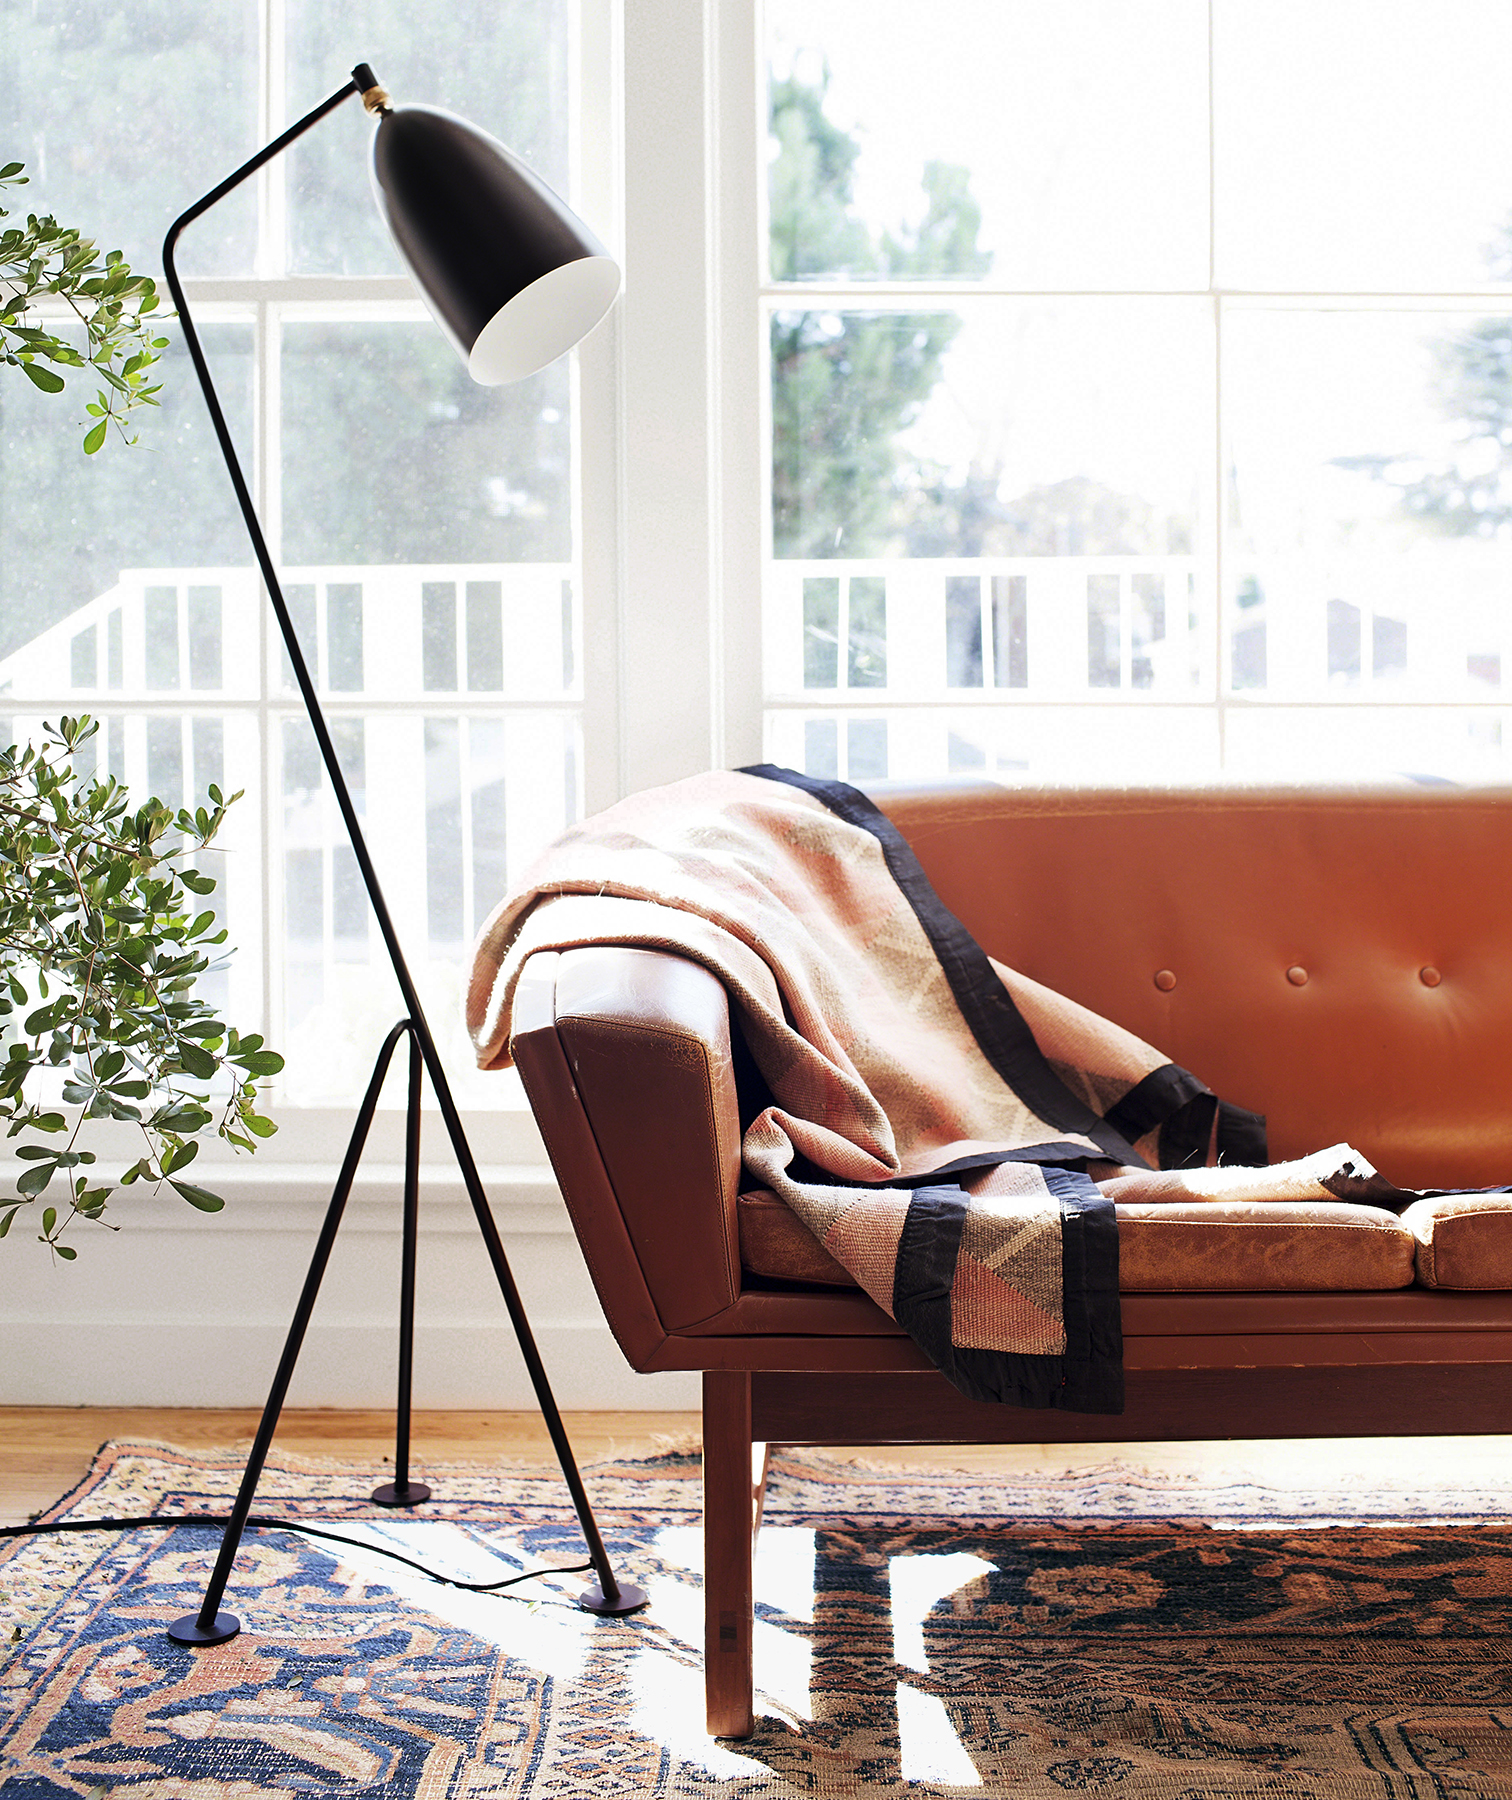 10 Decorating Mistakes You're Making (and How to Fix Them)